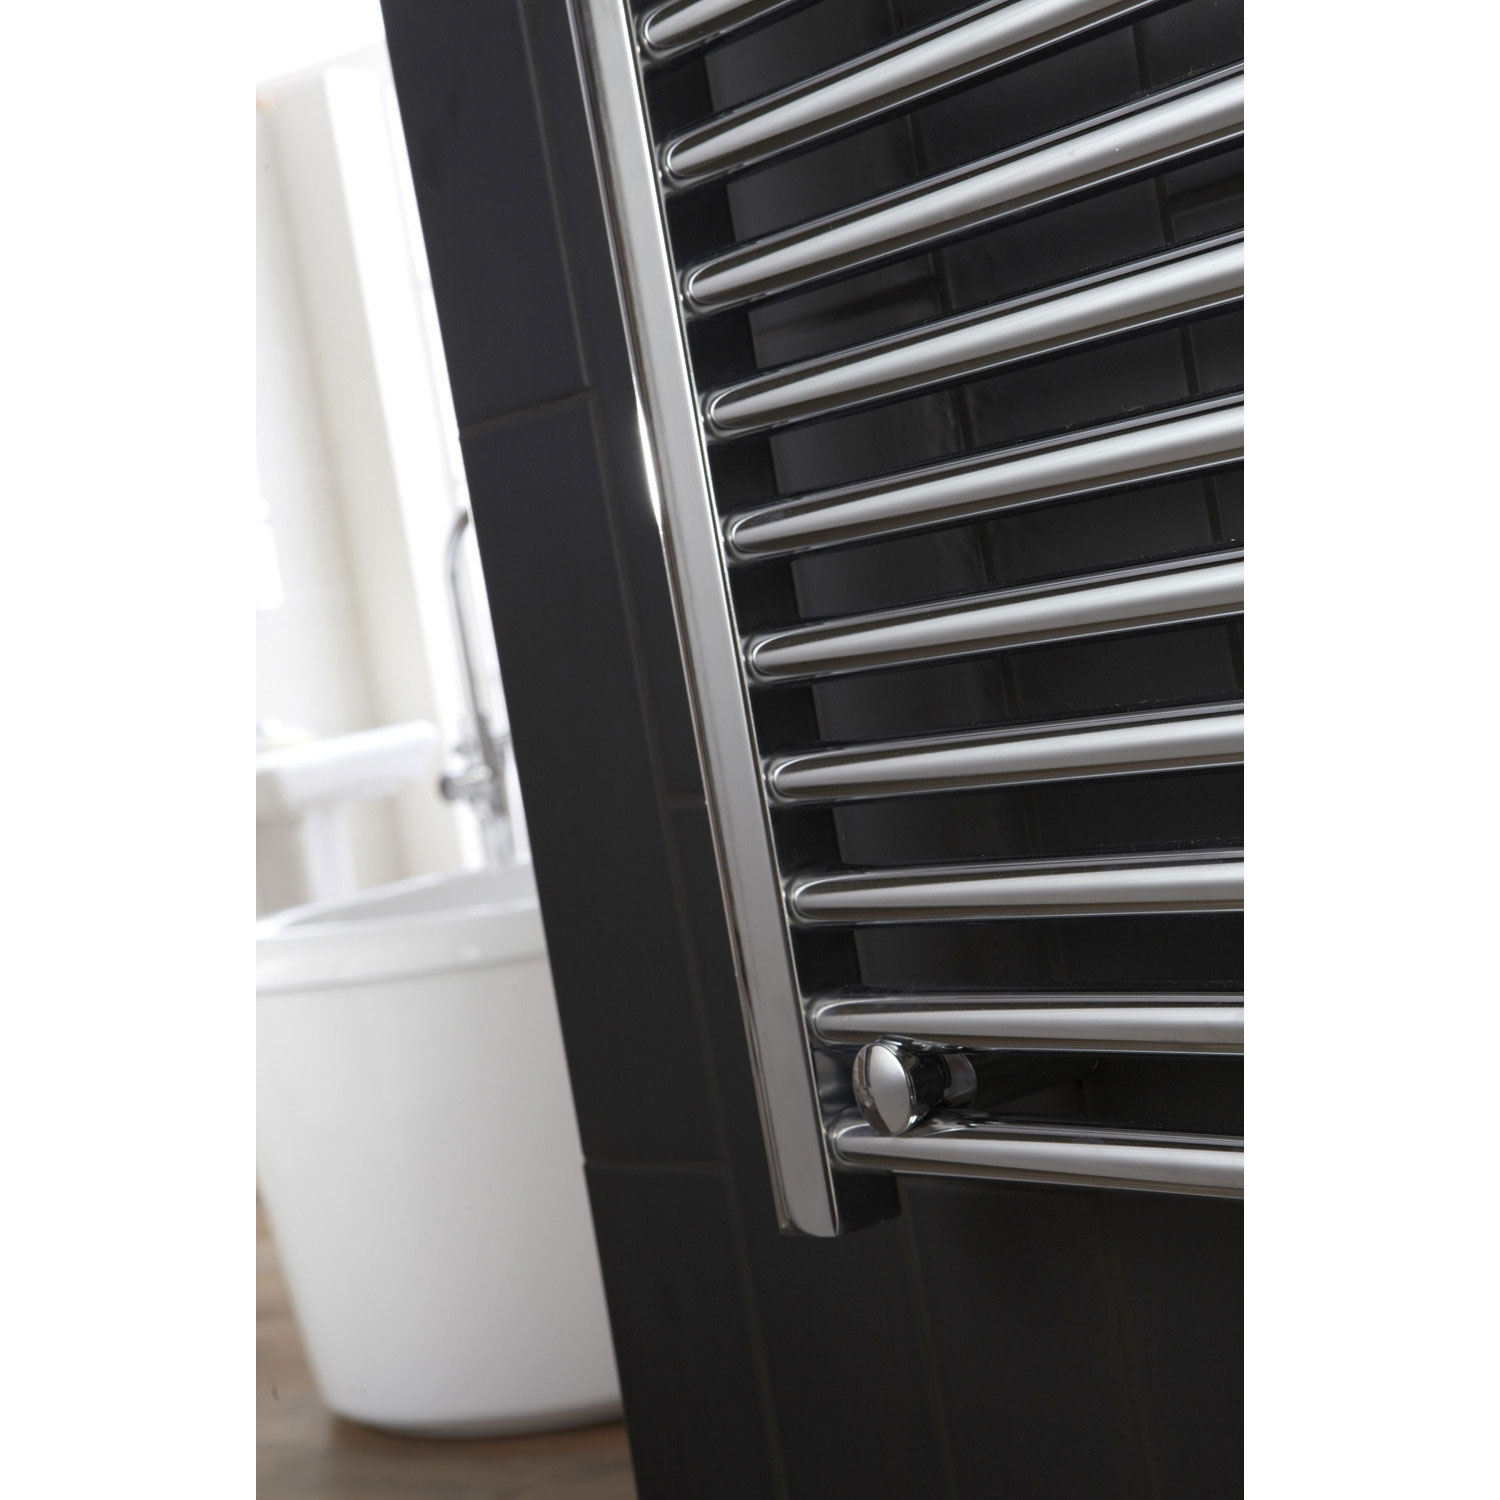 Verona Flat Designer Heated Towel Rail 1100mm H x 450mm W Chrome-2